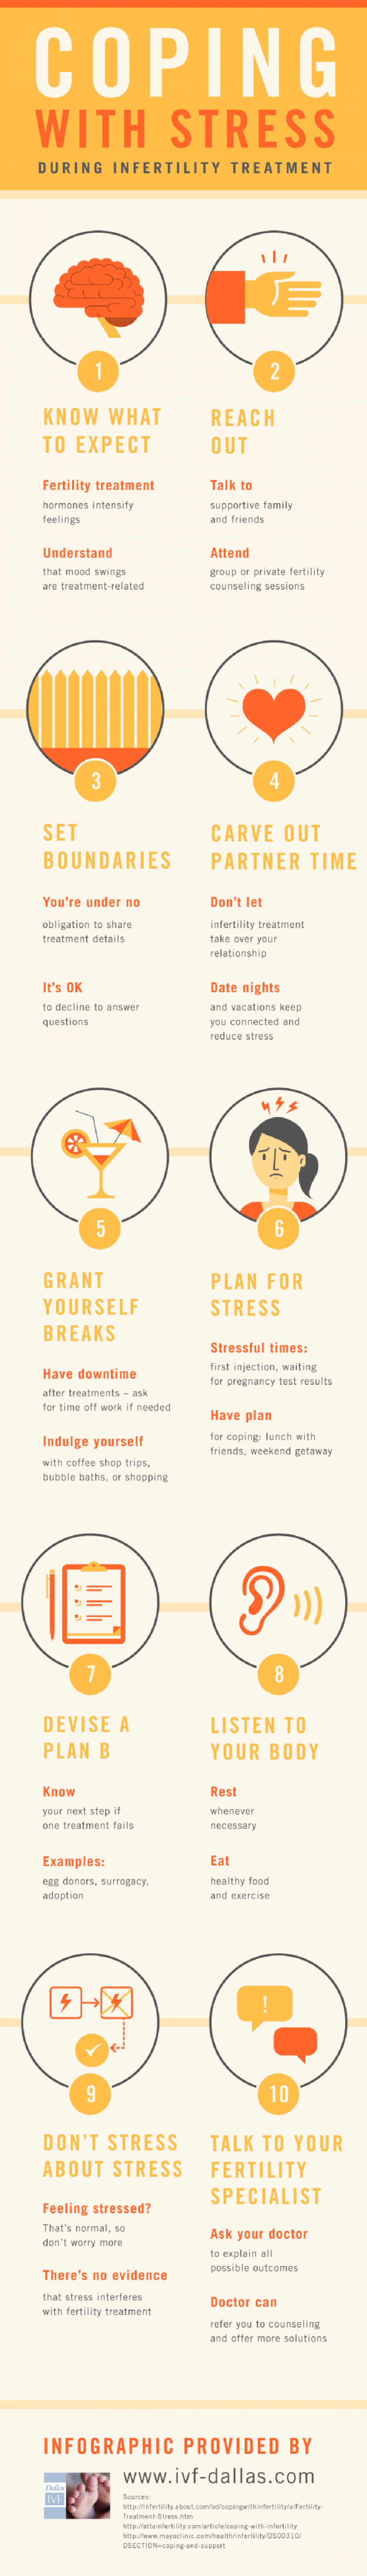 Coping with Stress during Infertility Treatment Infographic